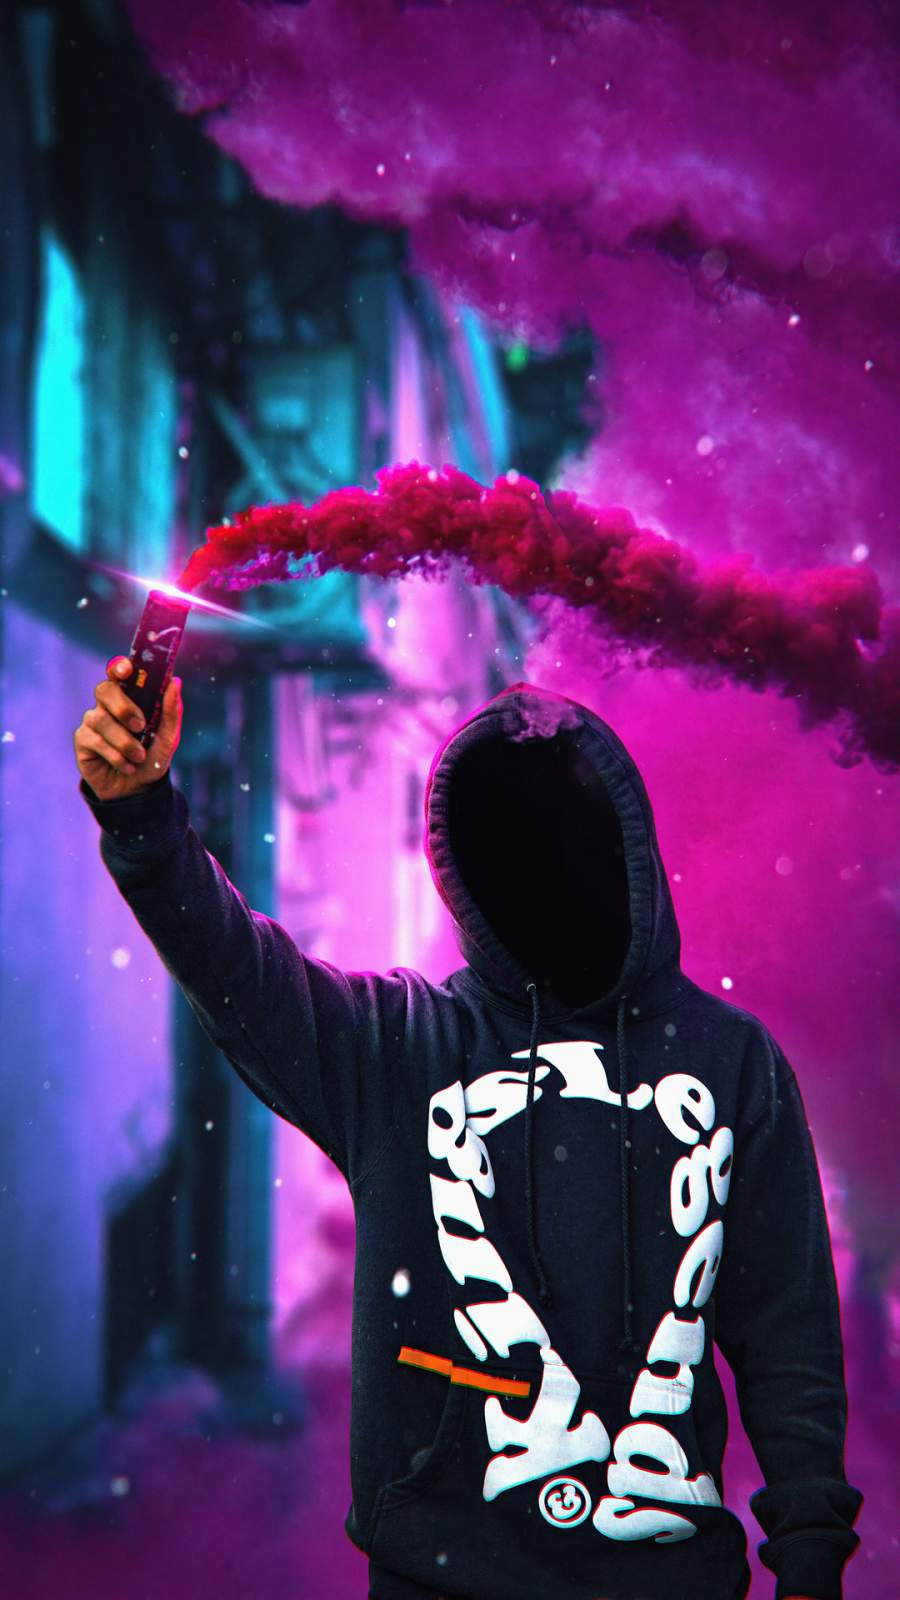 Anonymus Hoodie withl Smoke Bomb